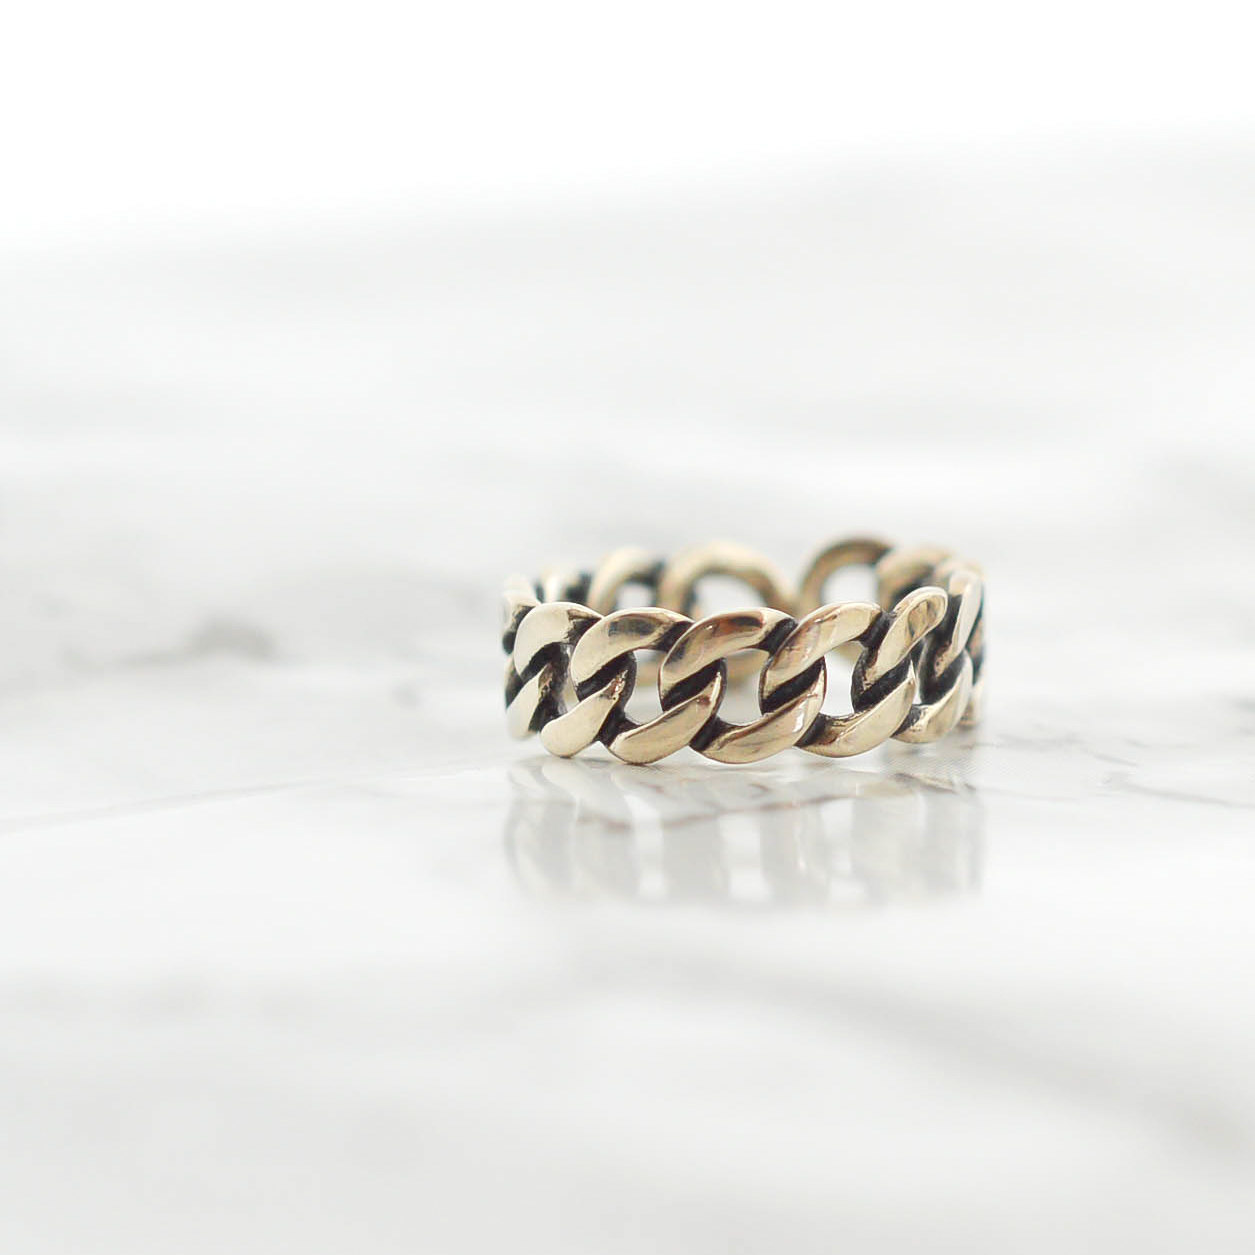 Oxidized small chain Silver925 Ring